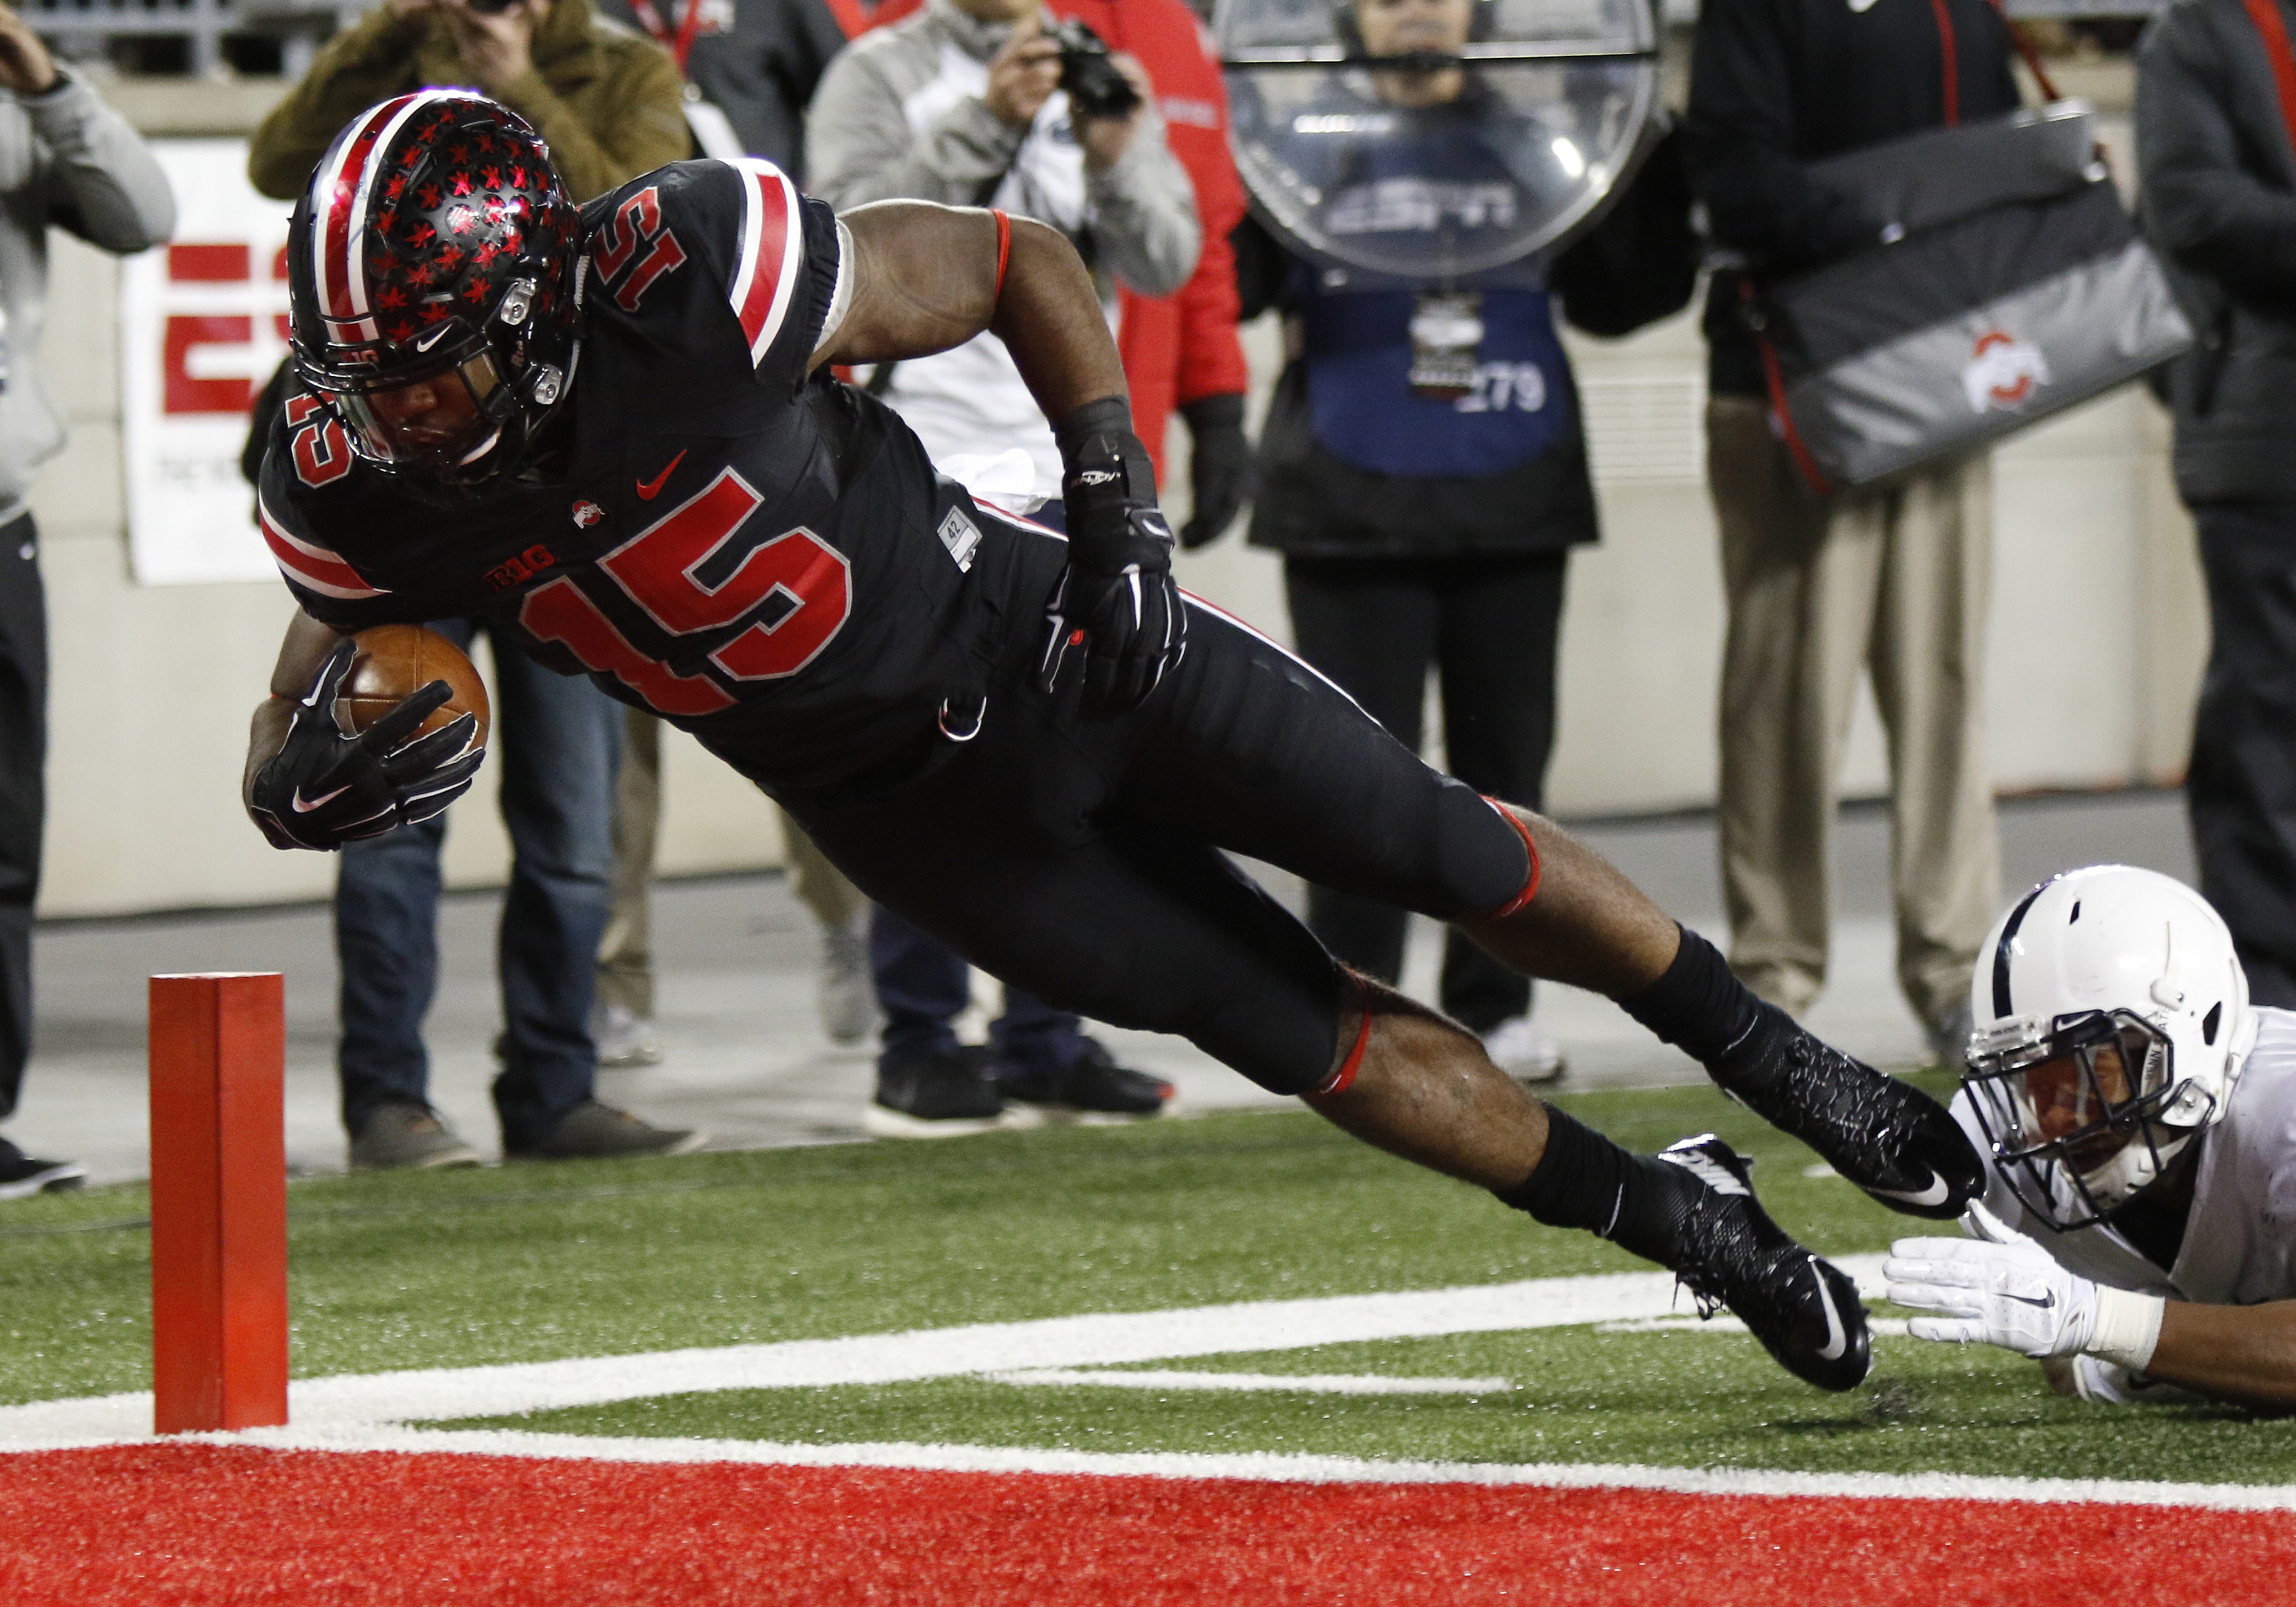 FILE - In this Oct. 17, 2015, file photo, Ohio State running back Ezekiel Elliott (15) escapes the grasp of Penn State defender Marcus Allen to score a touchdown during the first half of an NCAA college football game, in Columbus, Ohio. Offensive player o